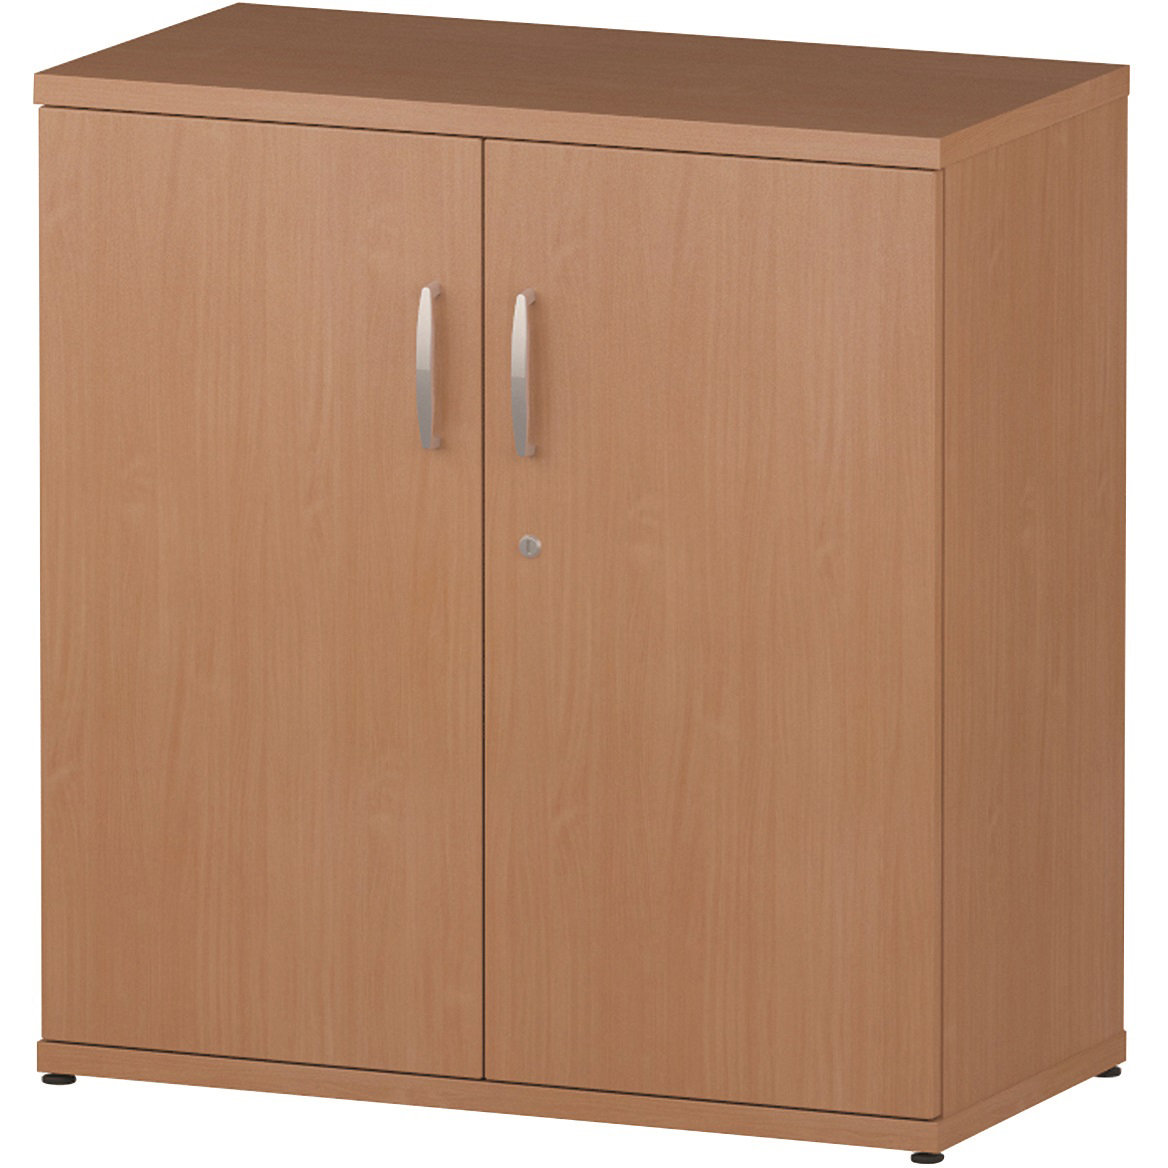 Trexus Office Low Cupboard 800x400x800mm 1 Shelves Beech Ref S00001